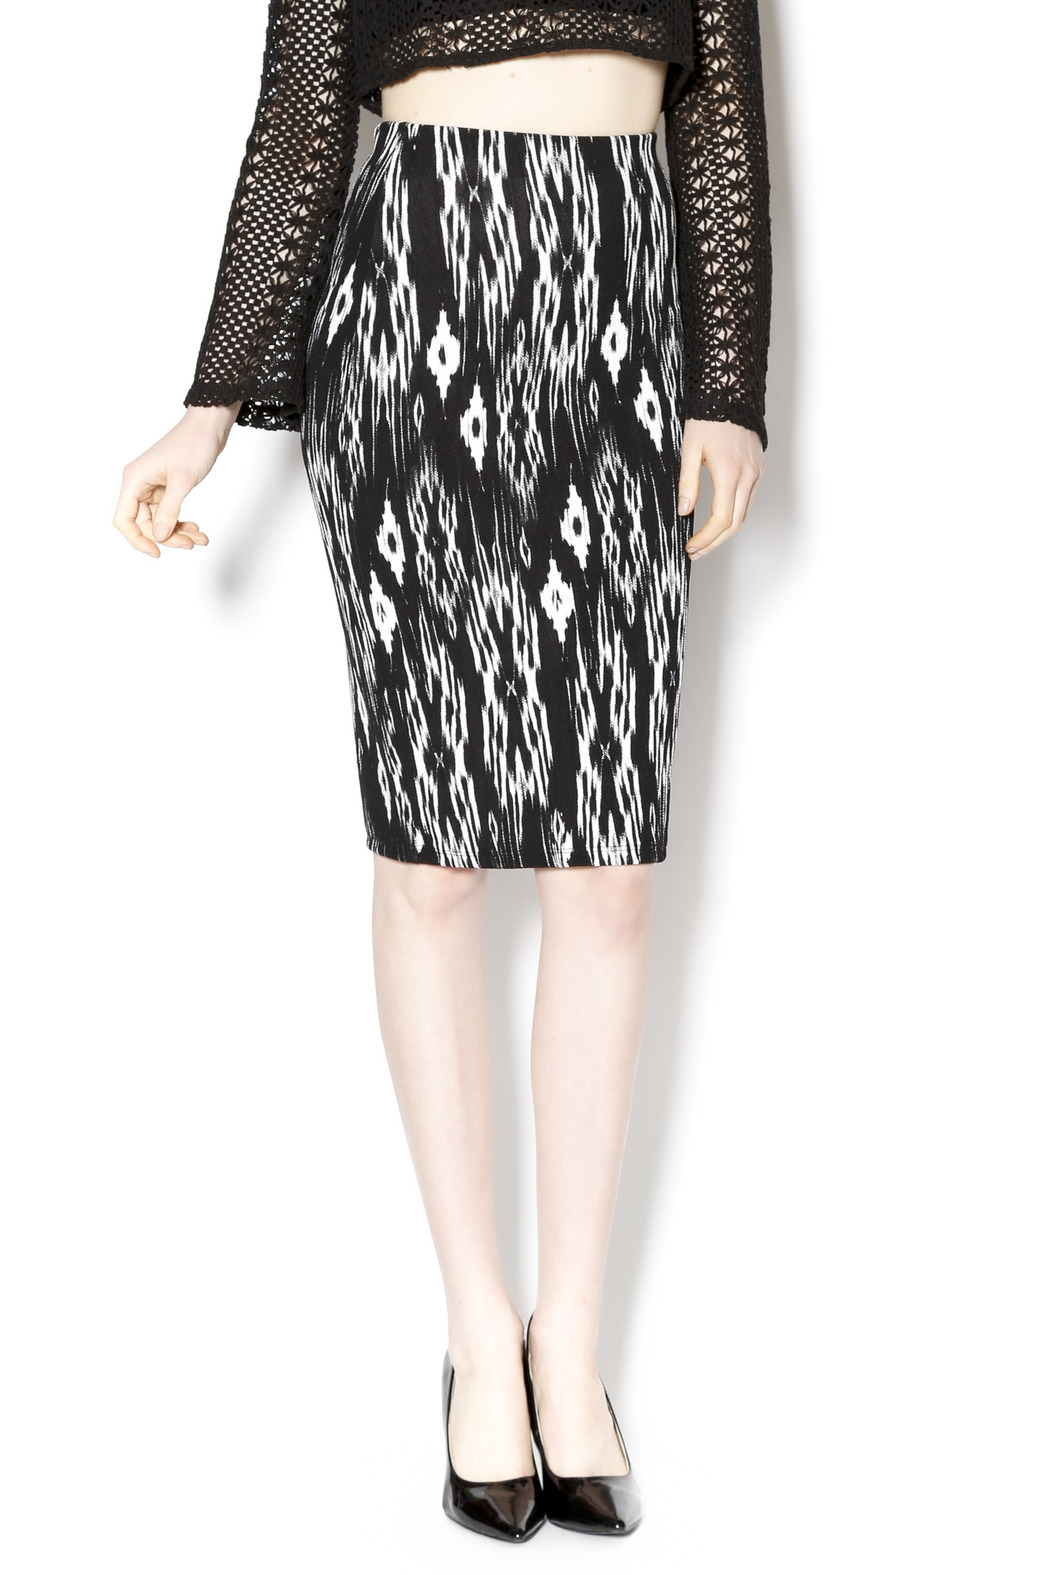 la ropas black white aztec pencil skirt from utah by my